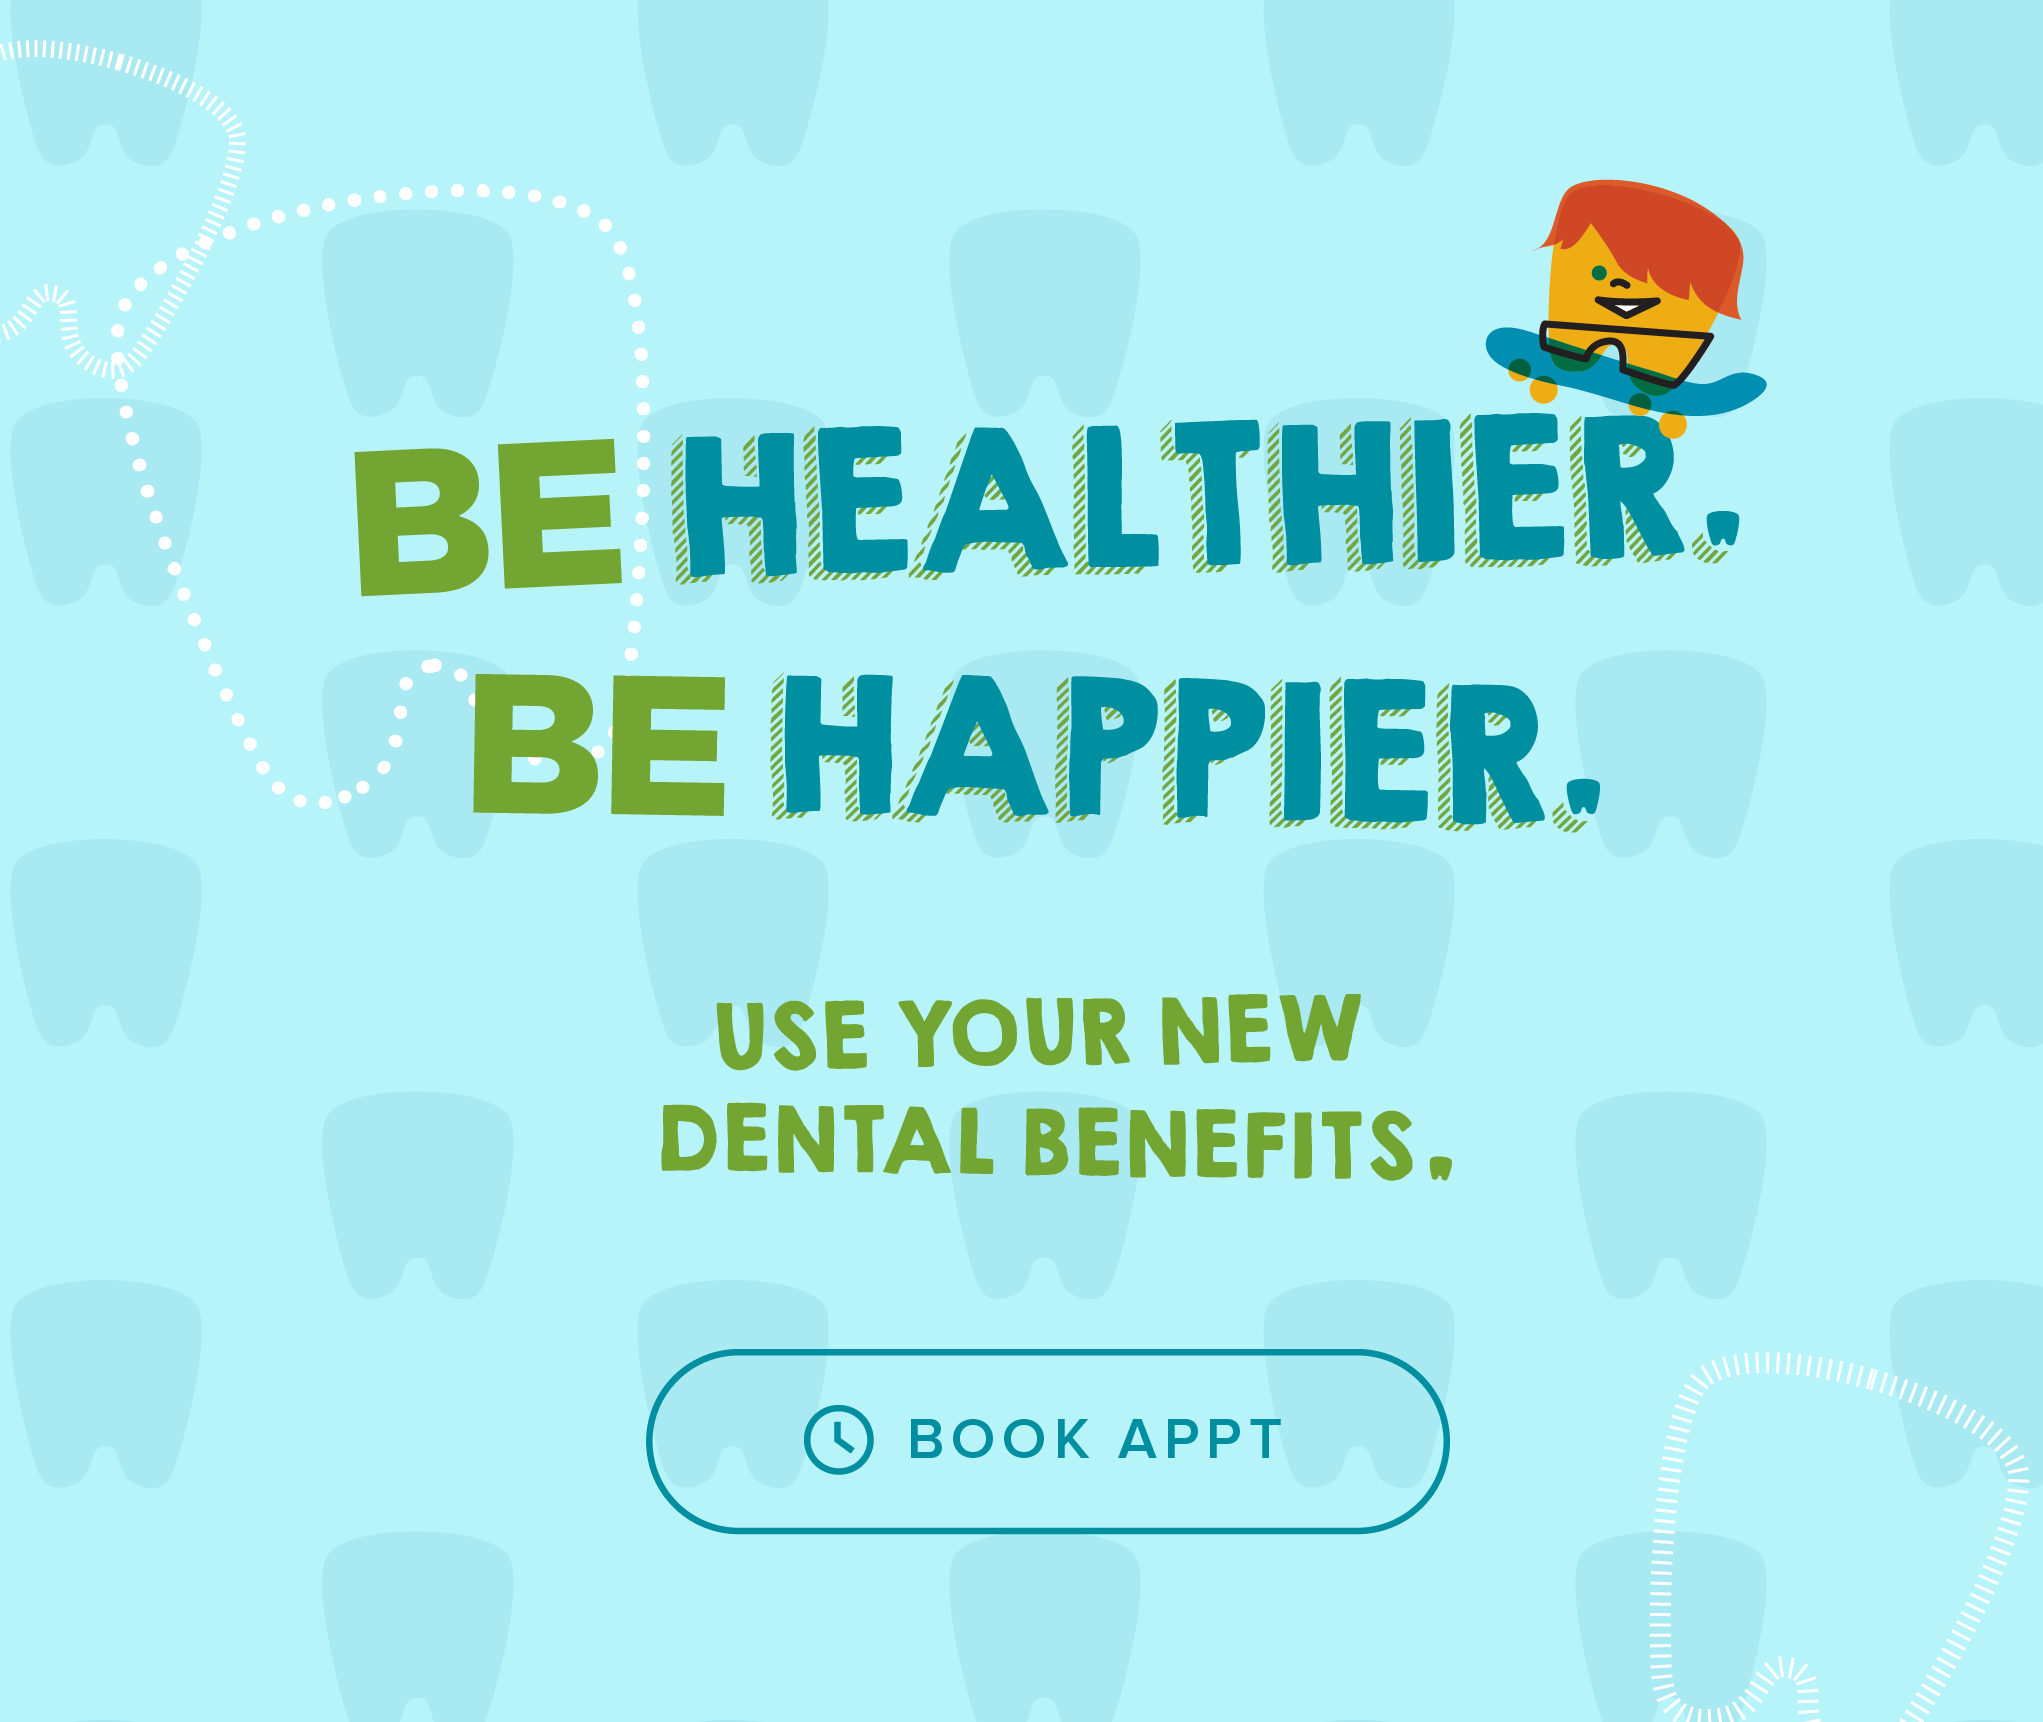 Be Healthier. Be Happier. Use your new dental benefits. - My Kid's Dentist & Orthodontics